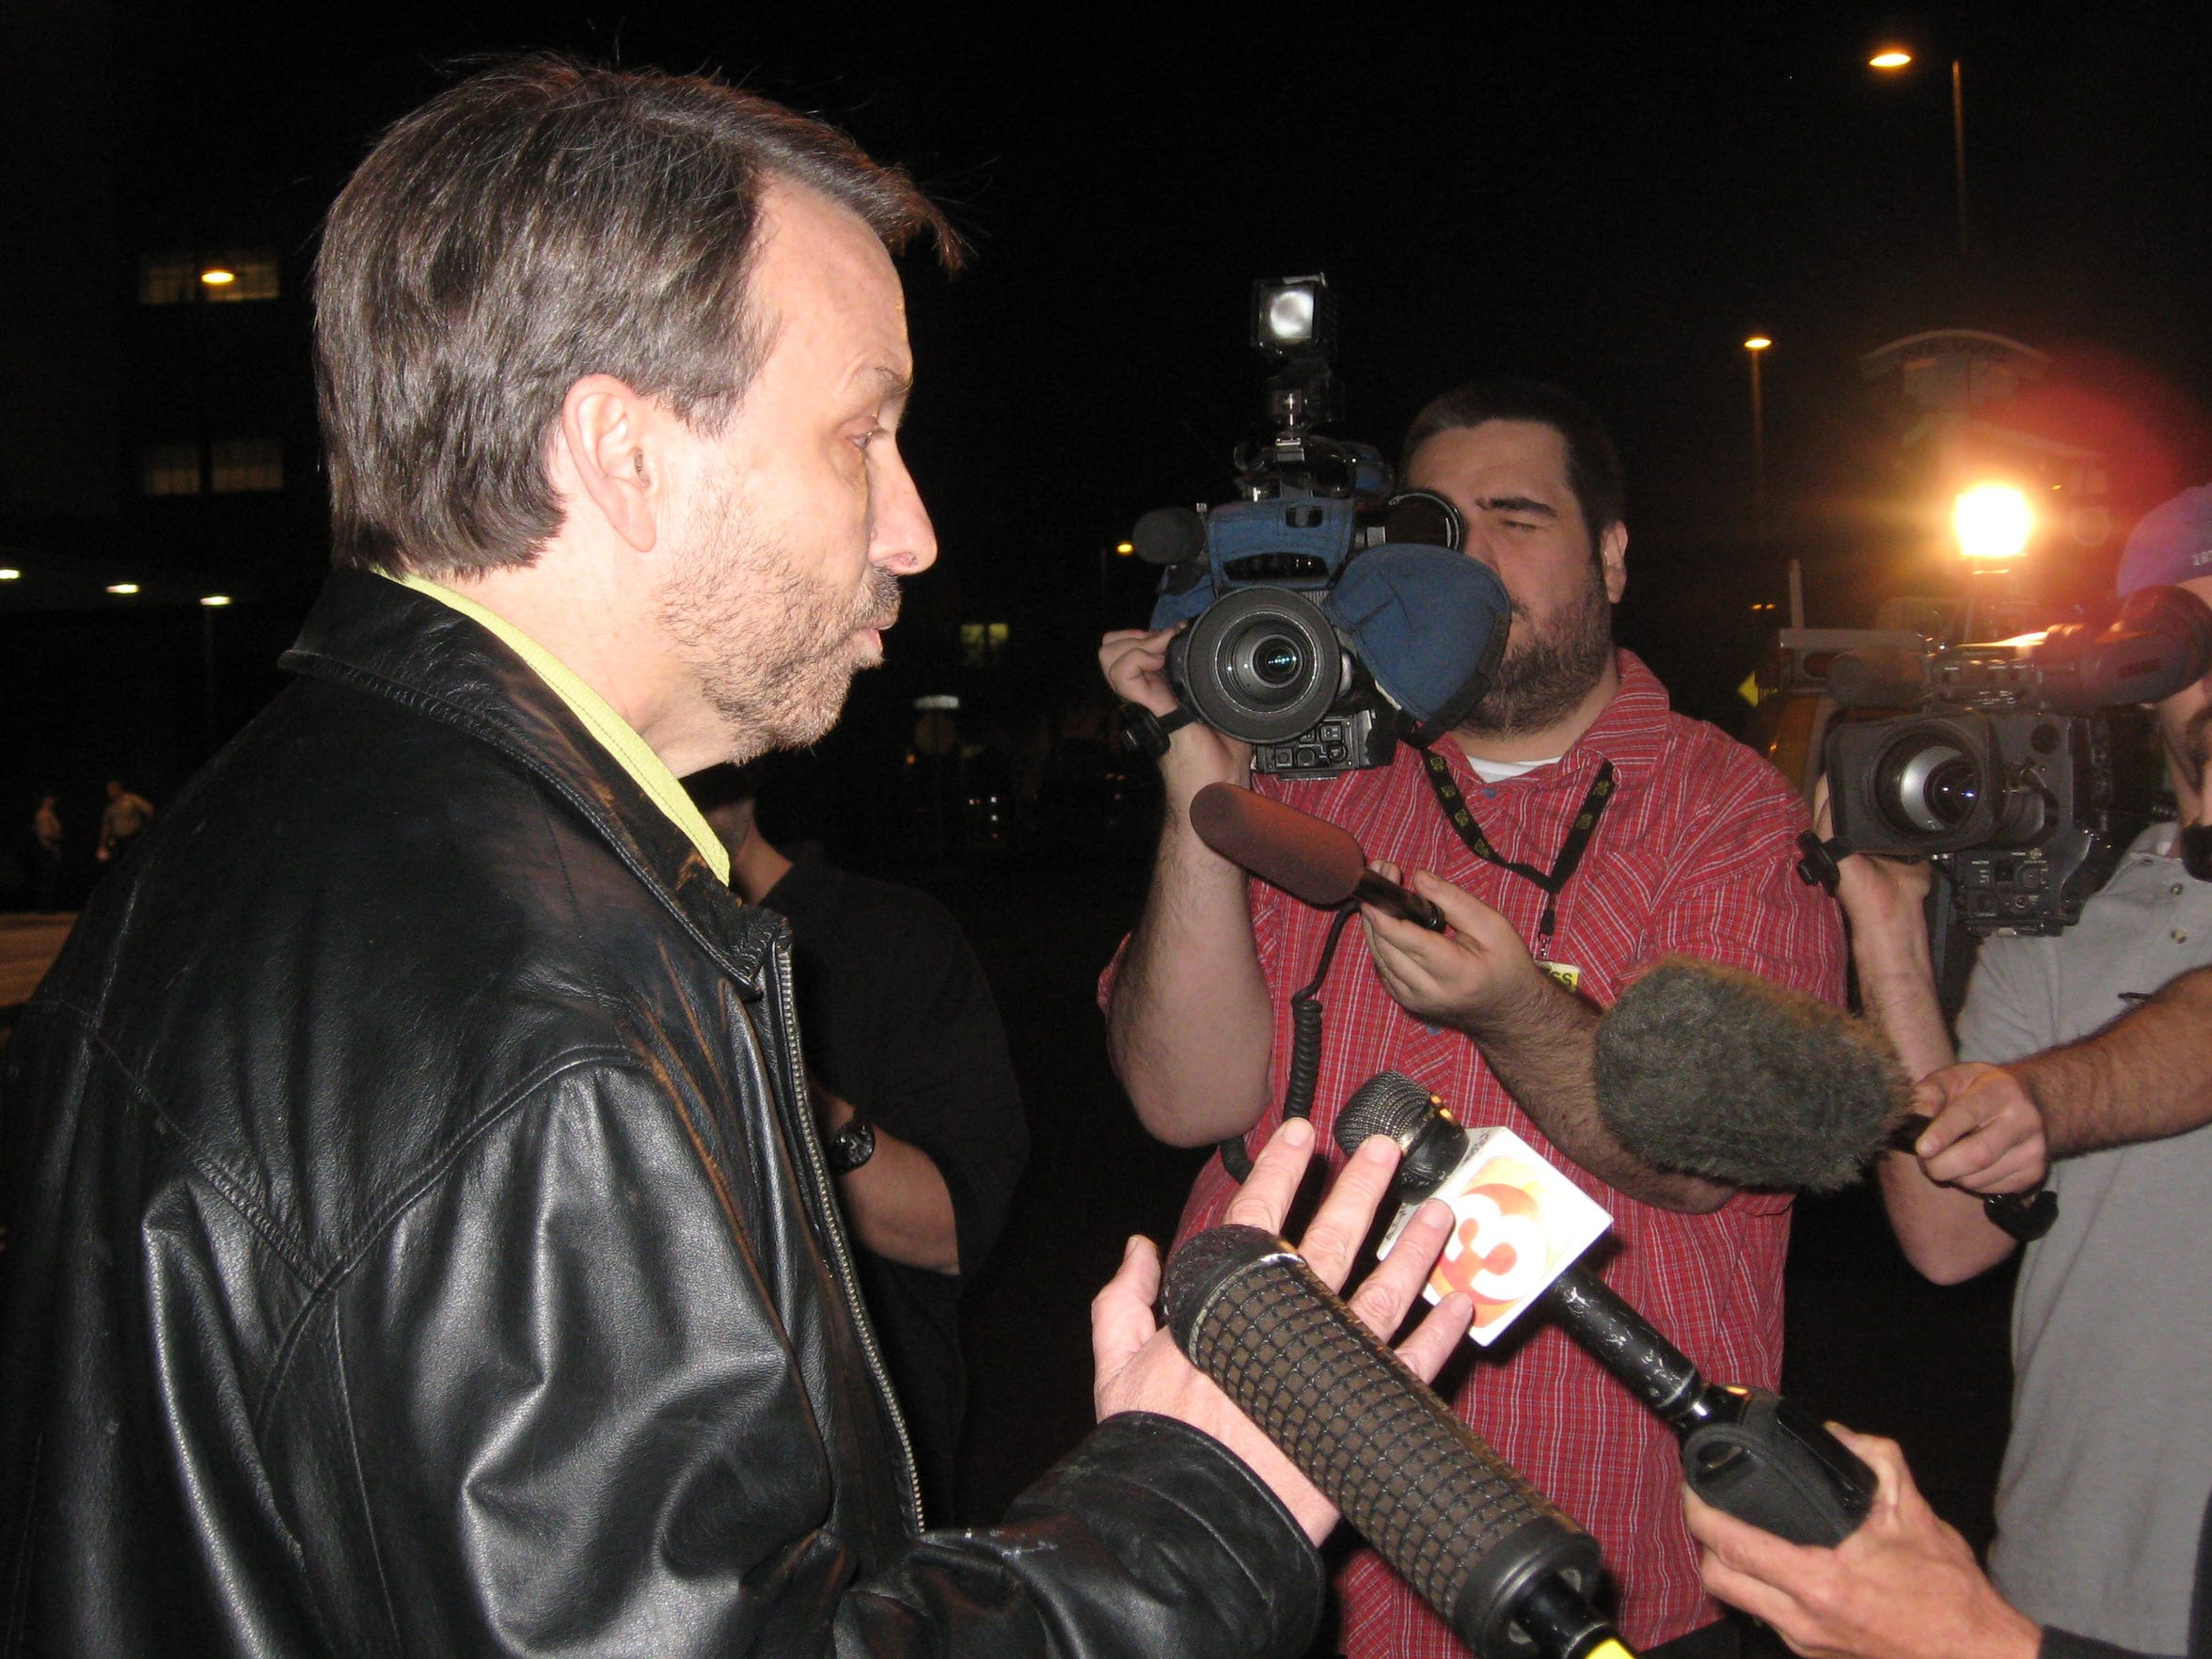 Phoenix New Times Editor Rick Barrs addresses the media outside the Fourth Avenue Jail in 2007 after the weekly's publishers, Mike Lacey and Jim Larkin, were detained by sheriff's deputies. No charges were filed.